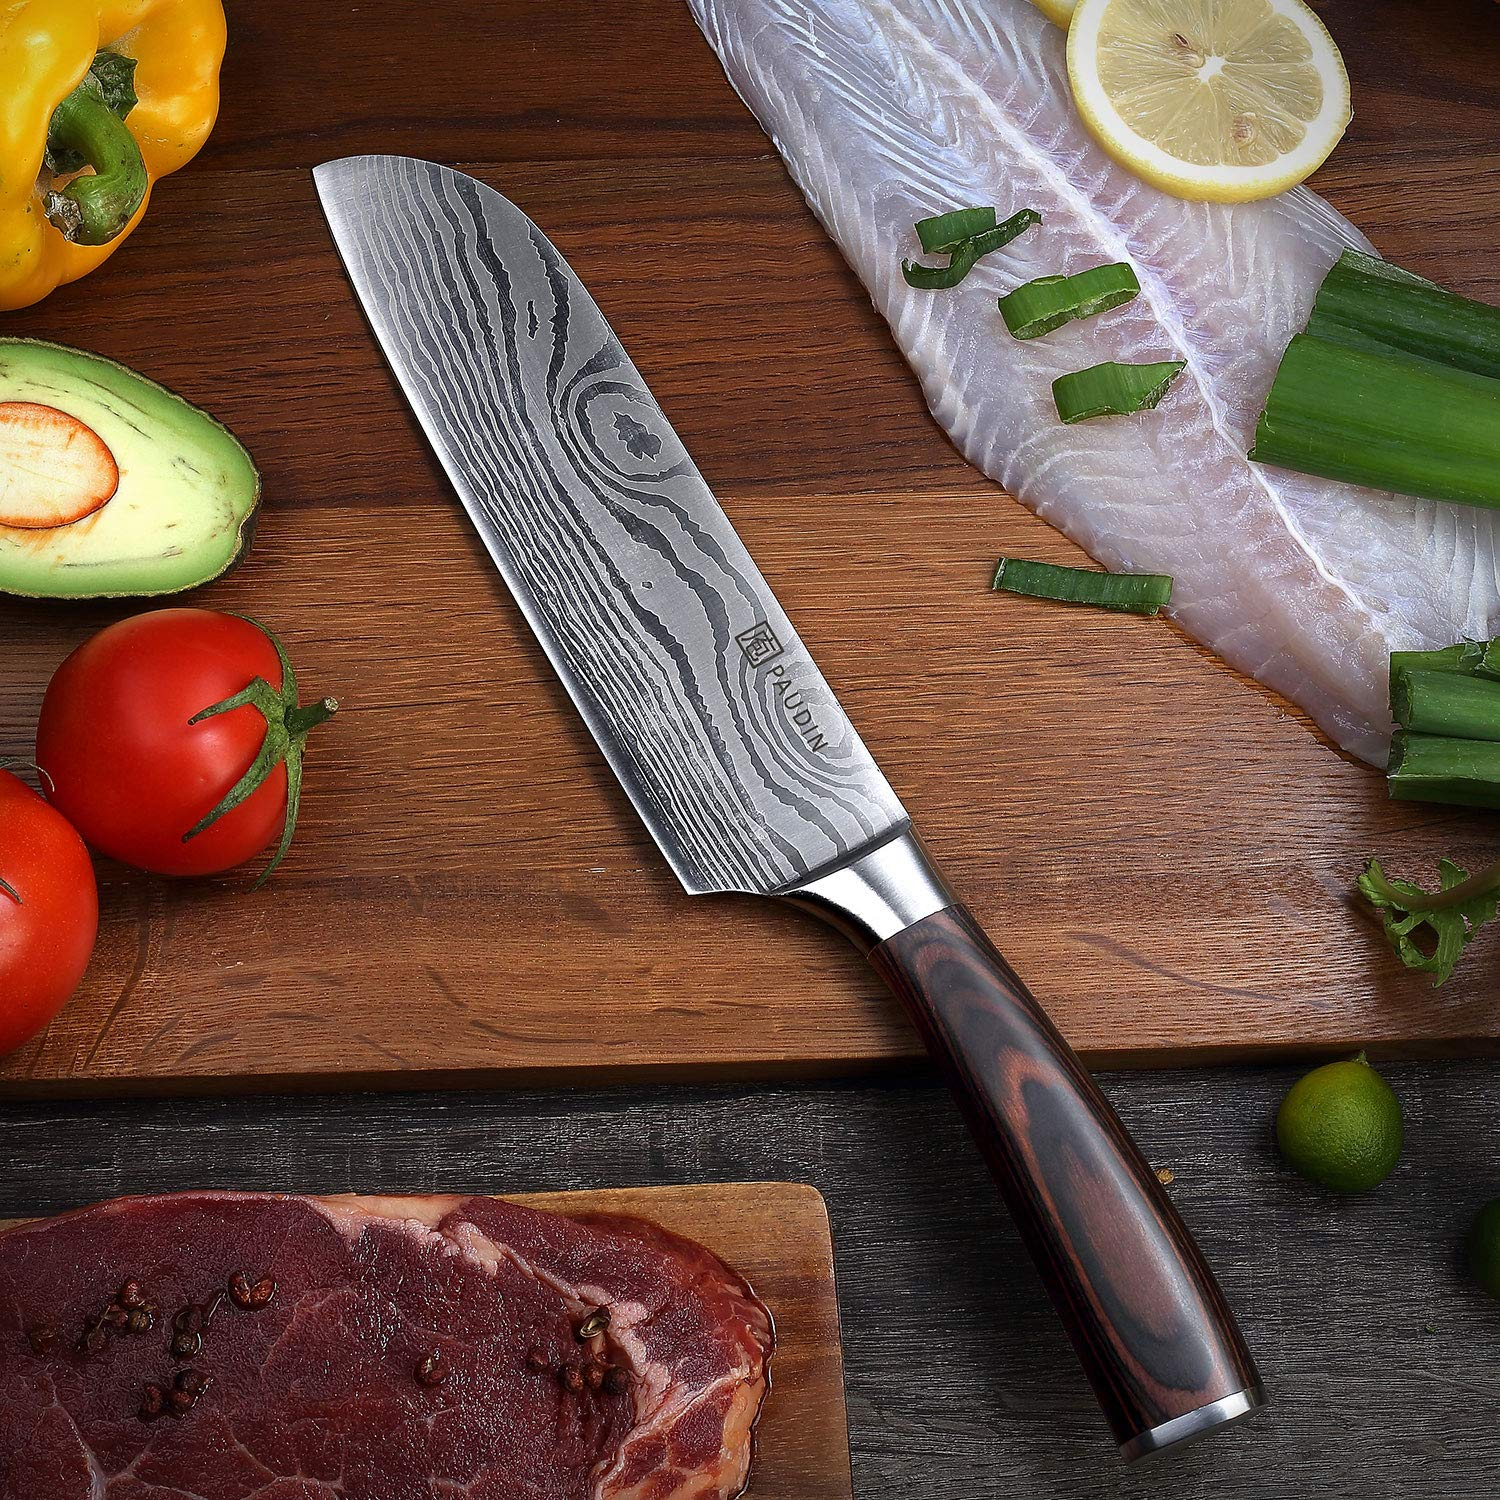 Santoku Knife - PAUDIN Classic 7 inch Hollow Ground Sharp Knife, German High Carbon Stainless Steel Kitchen Knife by PAUDIN (Image #2)